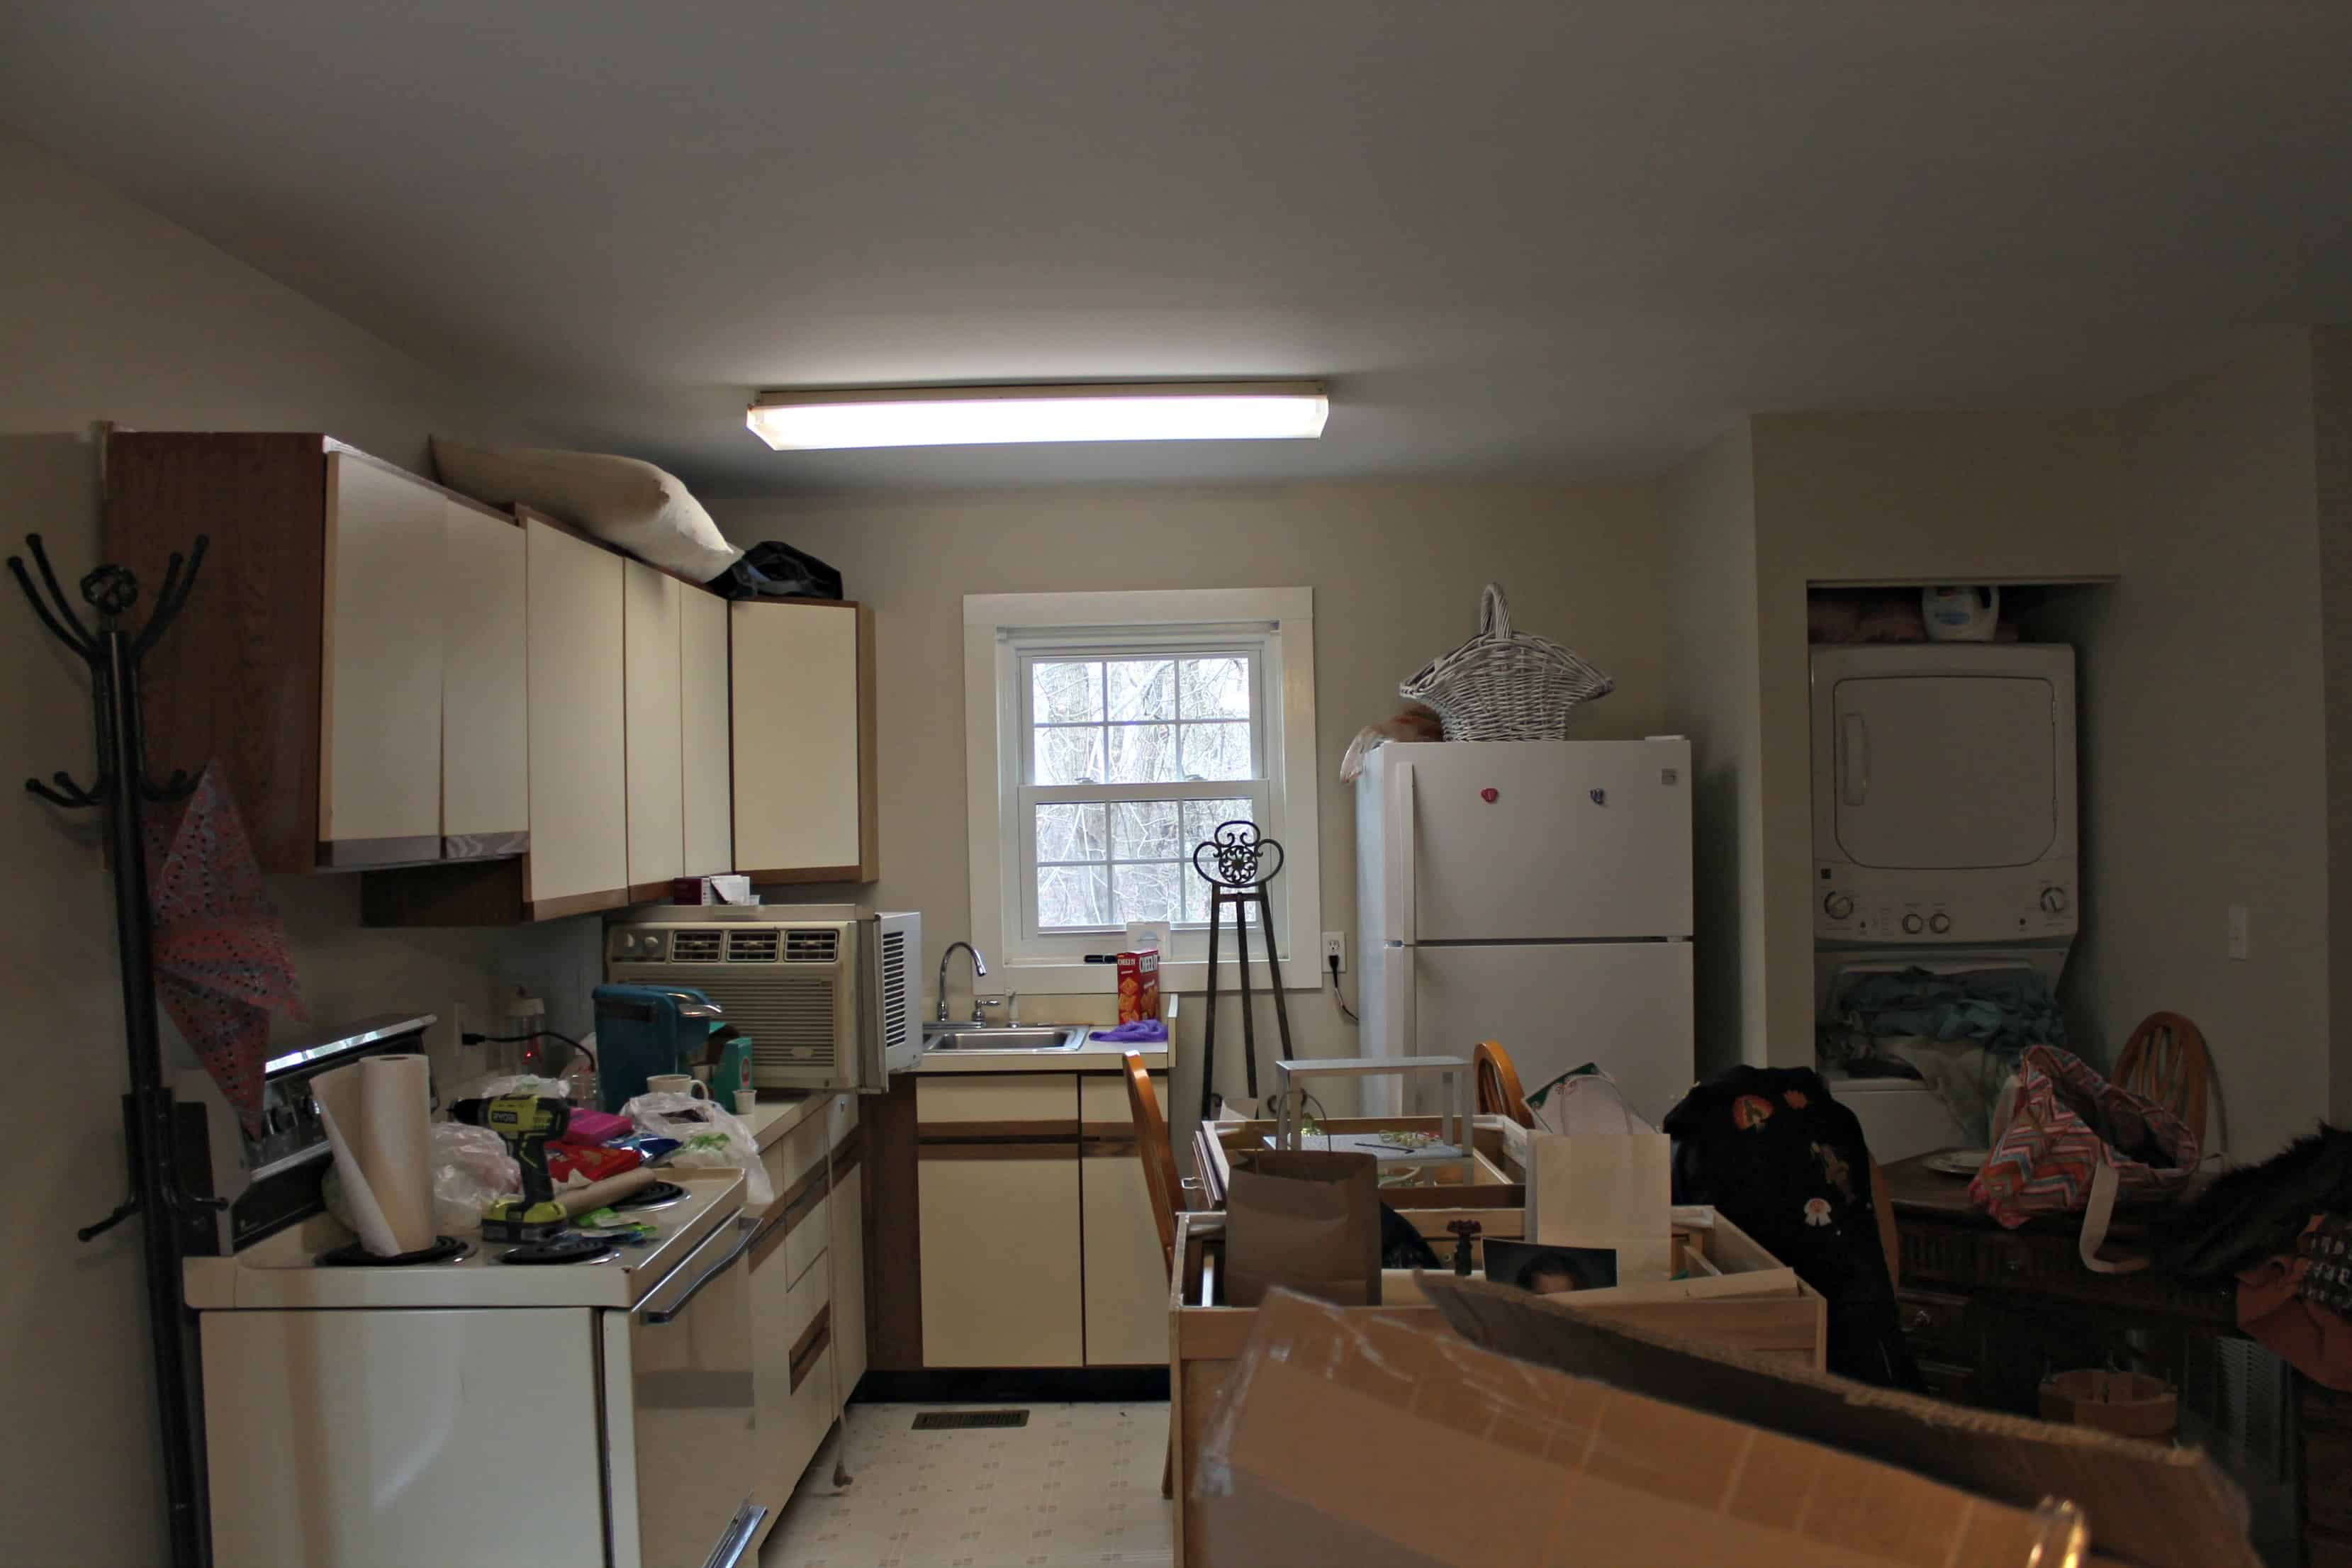 Saved by Scottie apartment kitchen full before